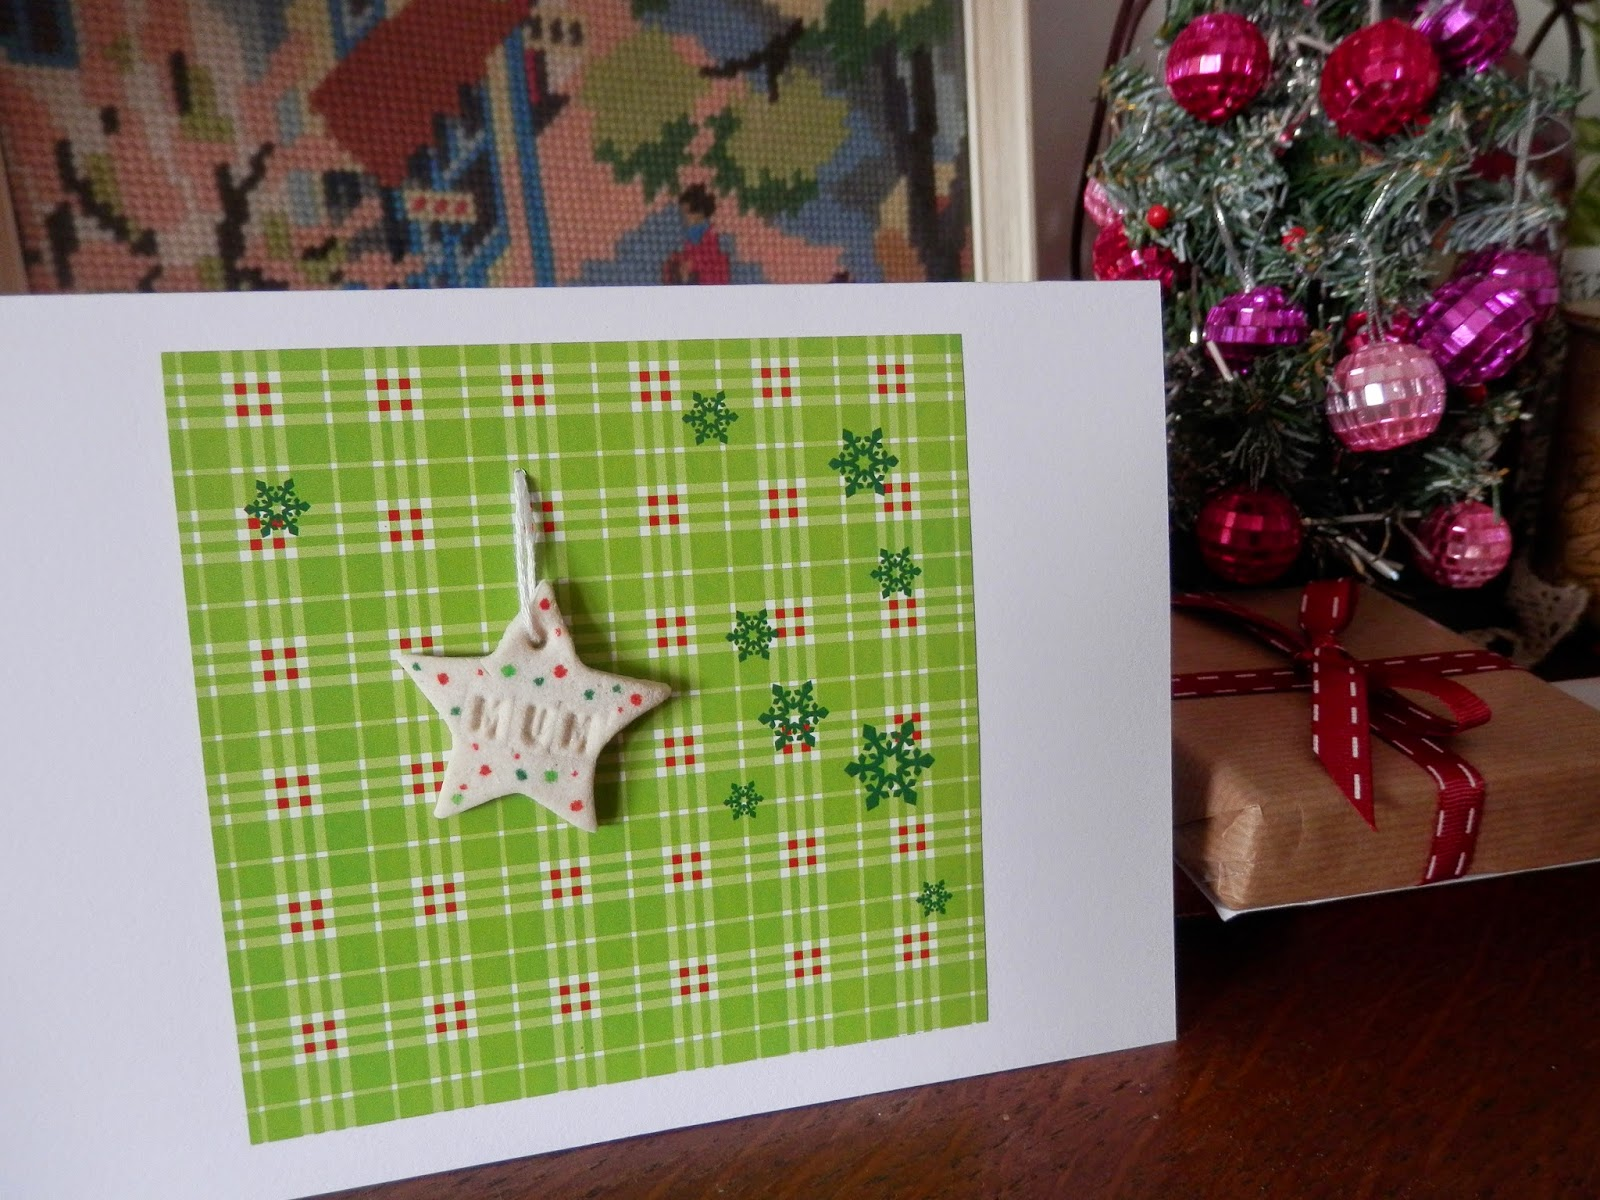 handmade-christmas-cards-with-salt-dough-tags-how-to secondhandsusie.blogspot.co.uk